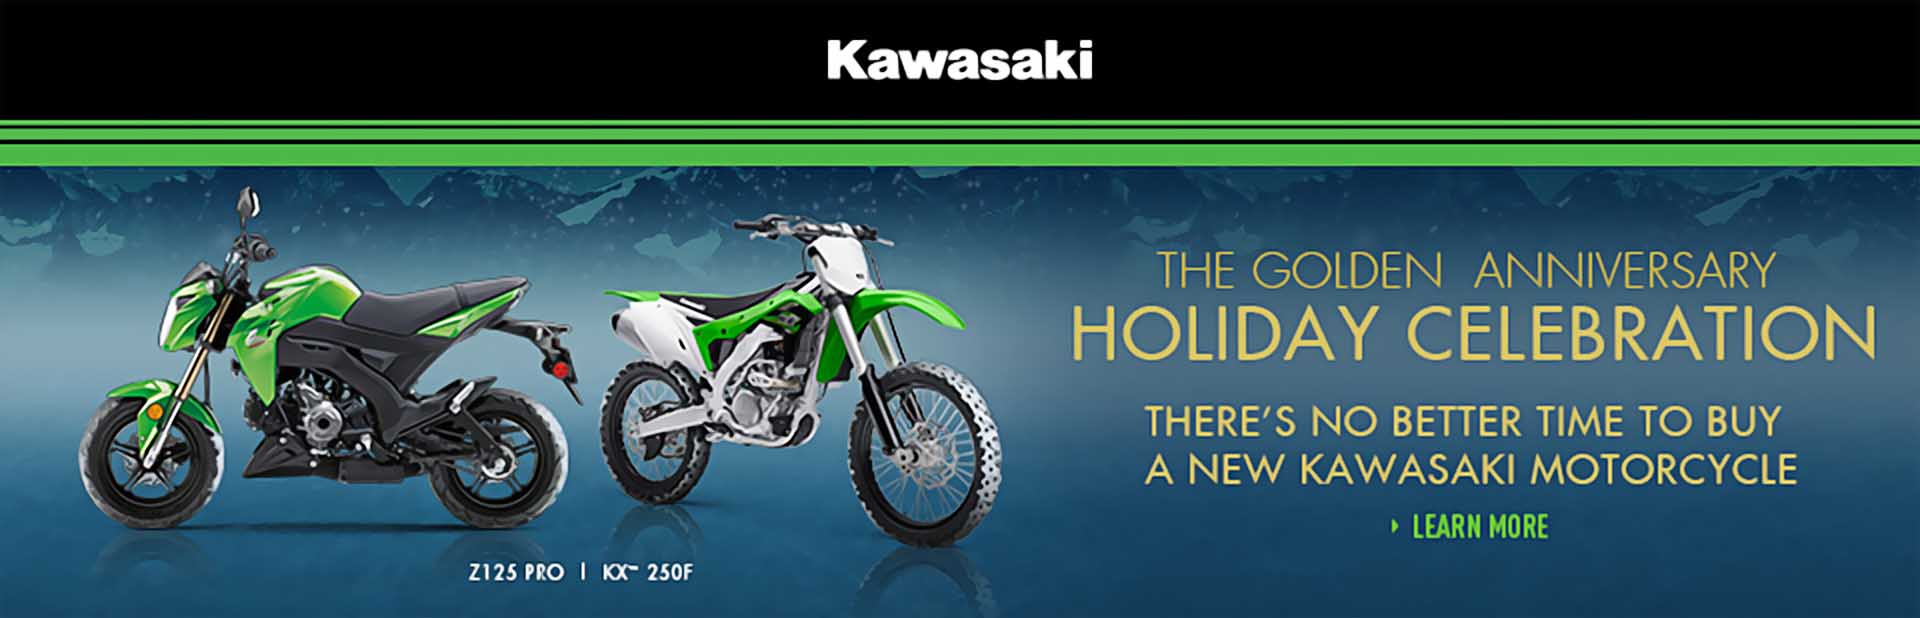 Kawasaki Golden Anniversary Holiday Celebration - Two Wheel